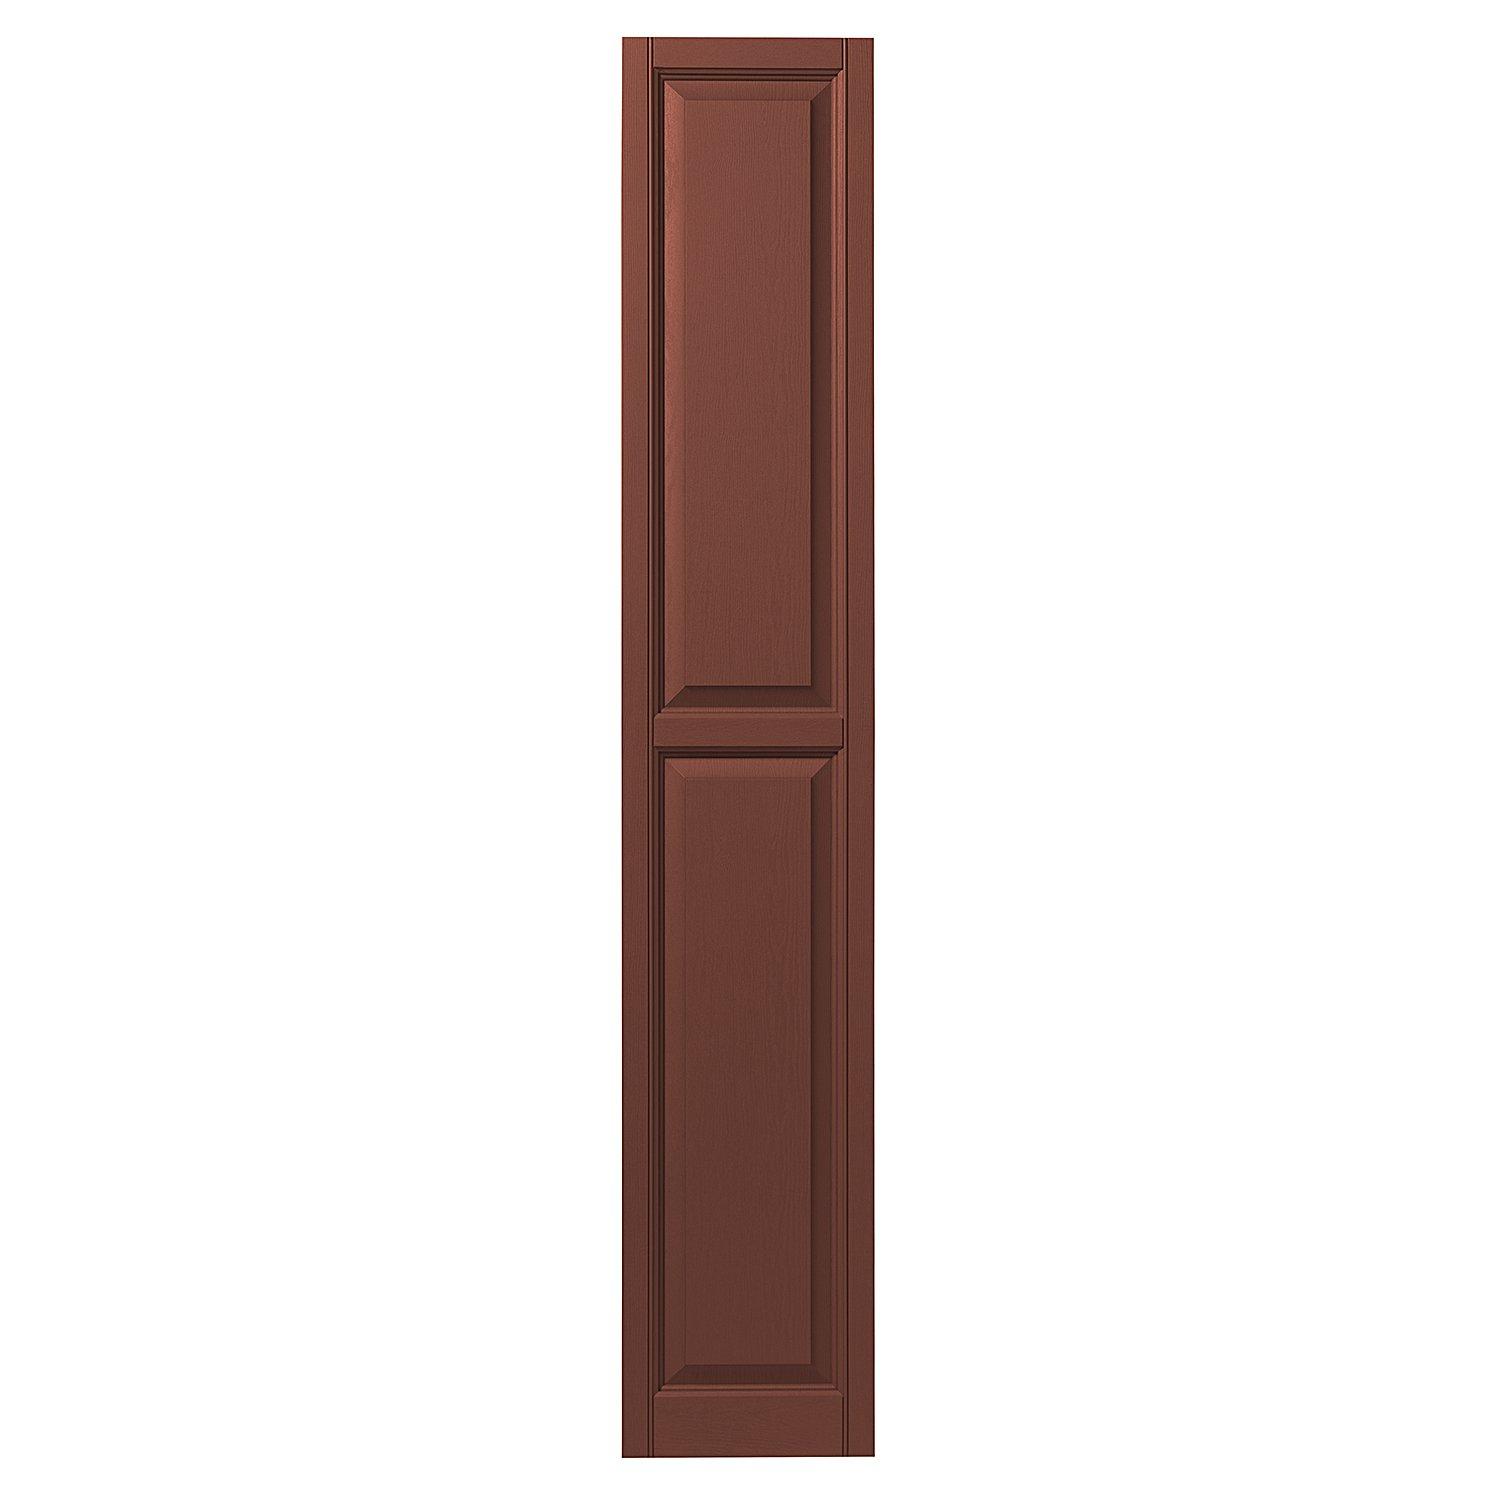 Ply Gem Shutters and Accents VINRP1271 38 Raised Panel Shutter, 12'', Red